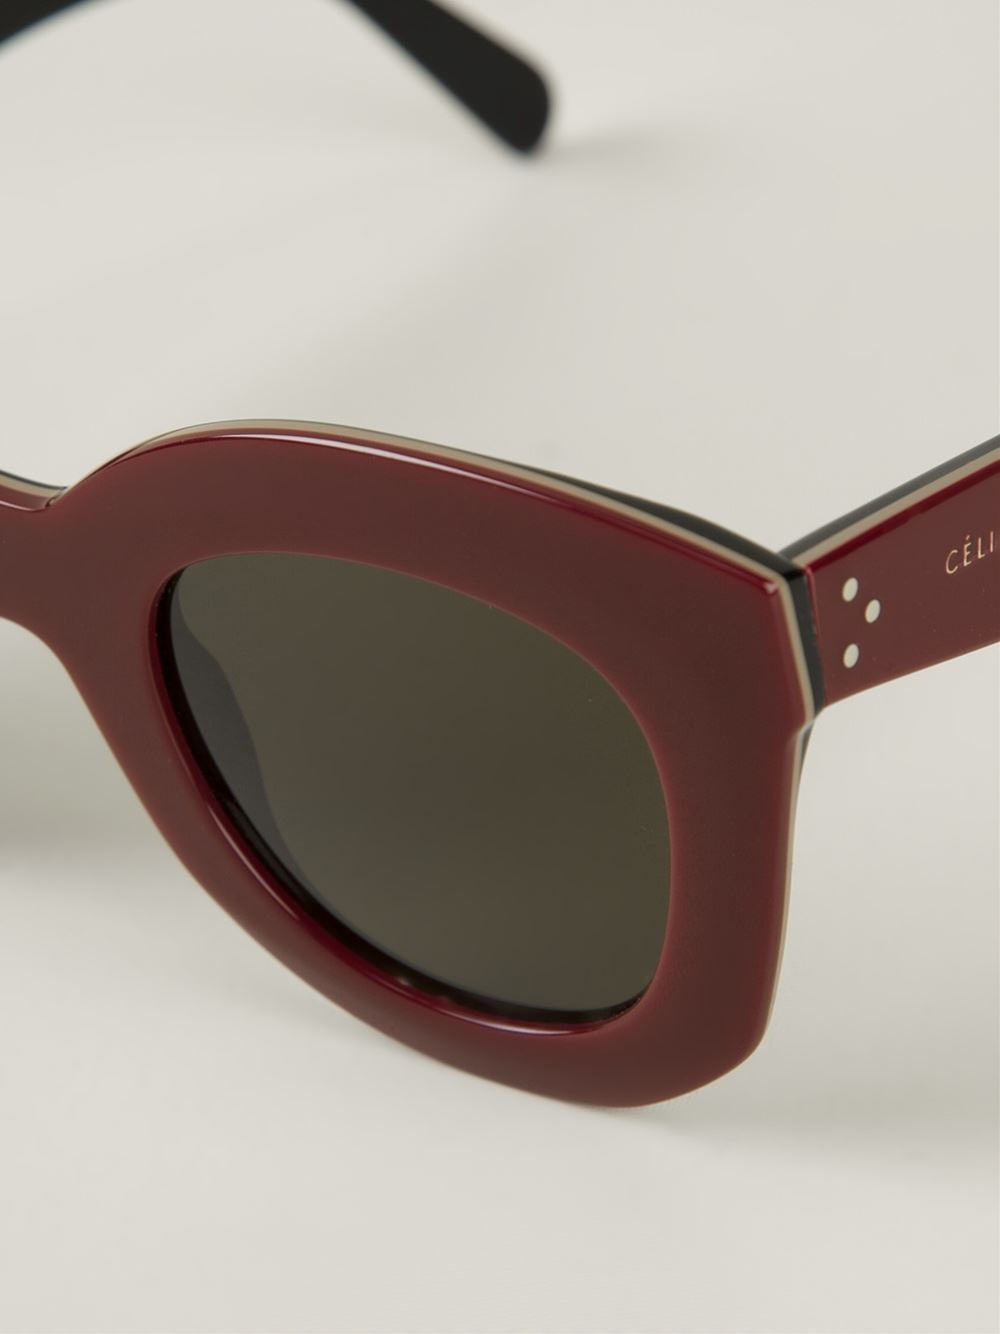 Celine Red Sunglasses  céline marta sunglasses in red lyst